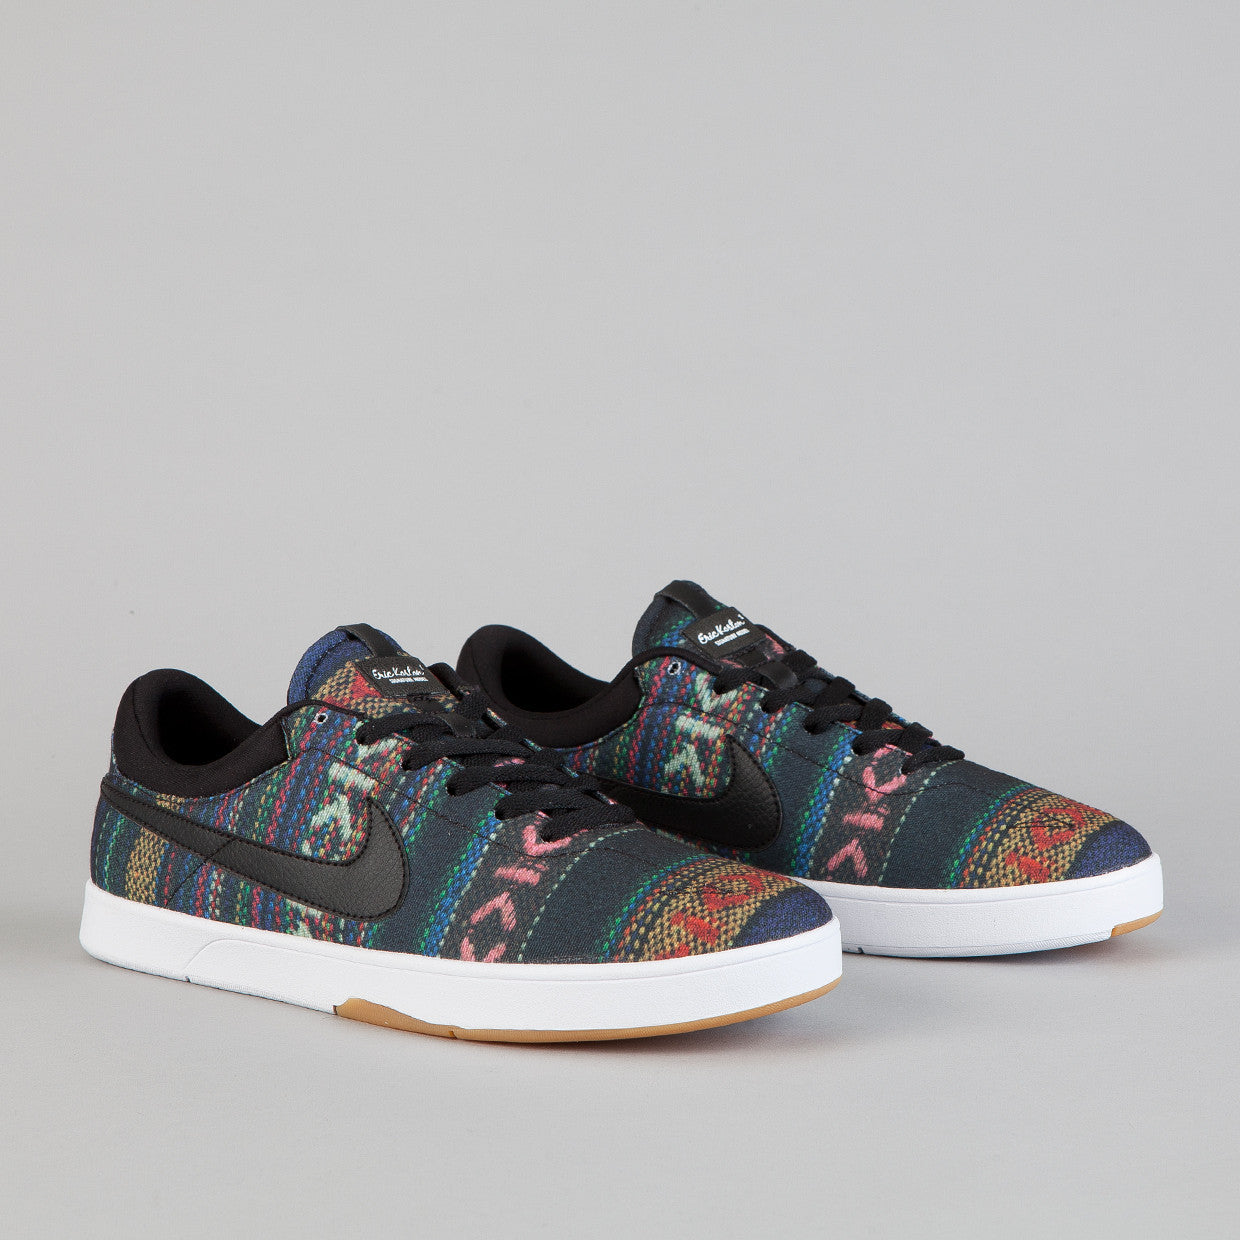 Nike SB Eric Koston SE (Hacky Sack) Multi-Colour / Black